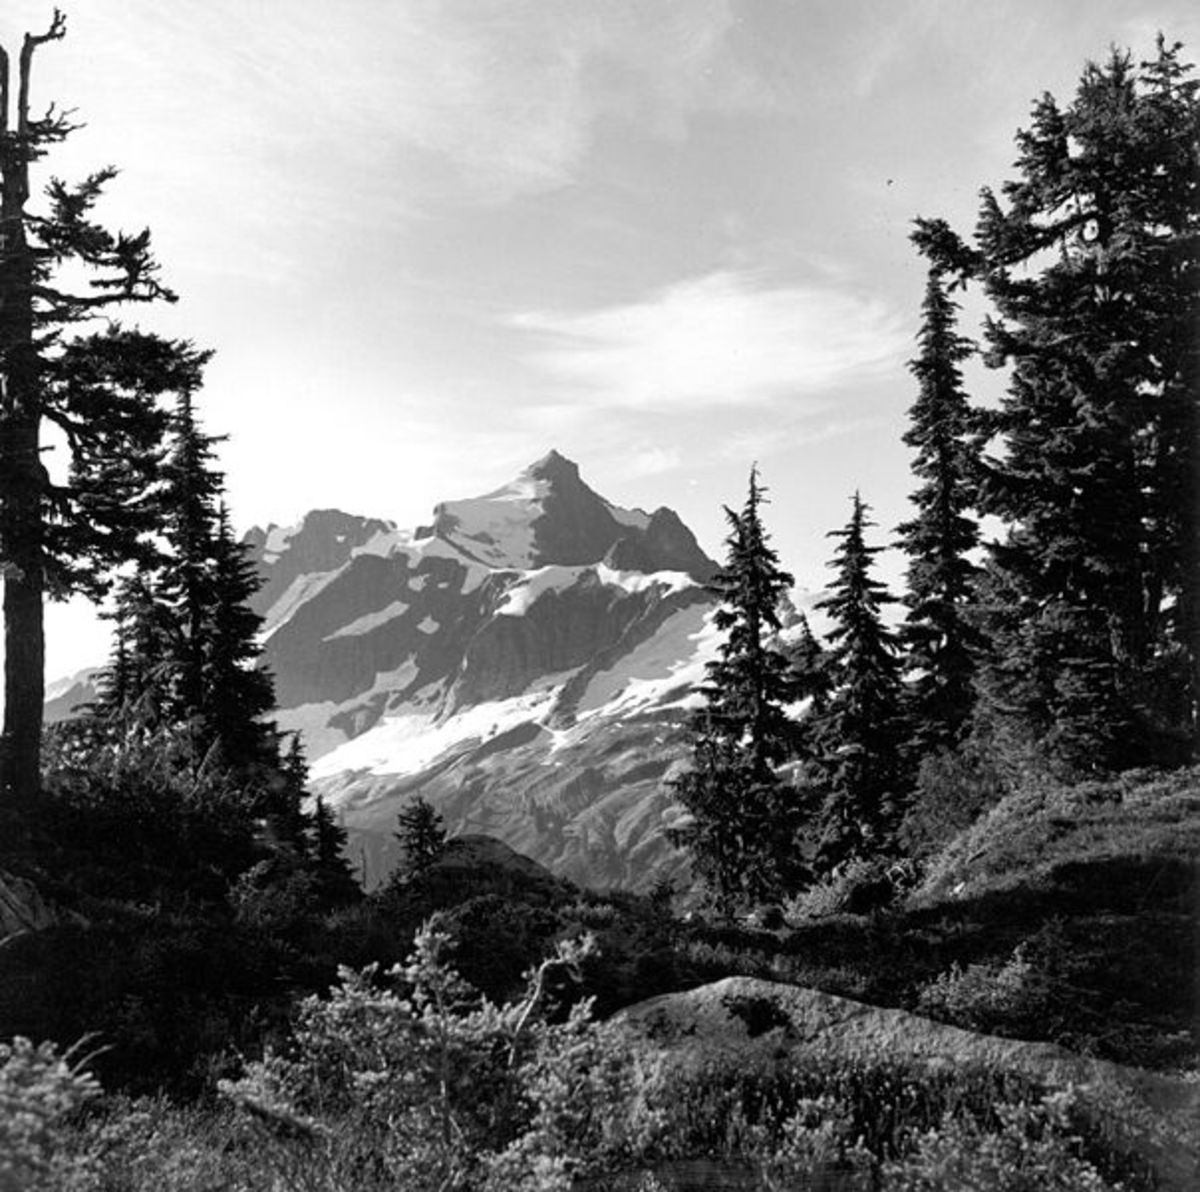 Mt. Despair in the North Cascades National Park